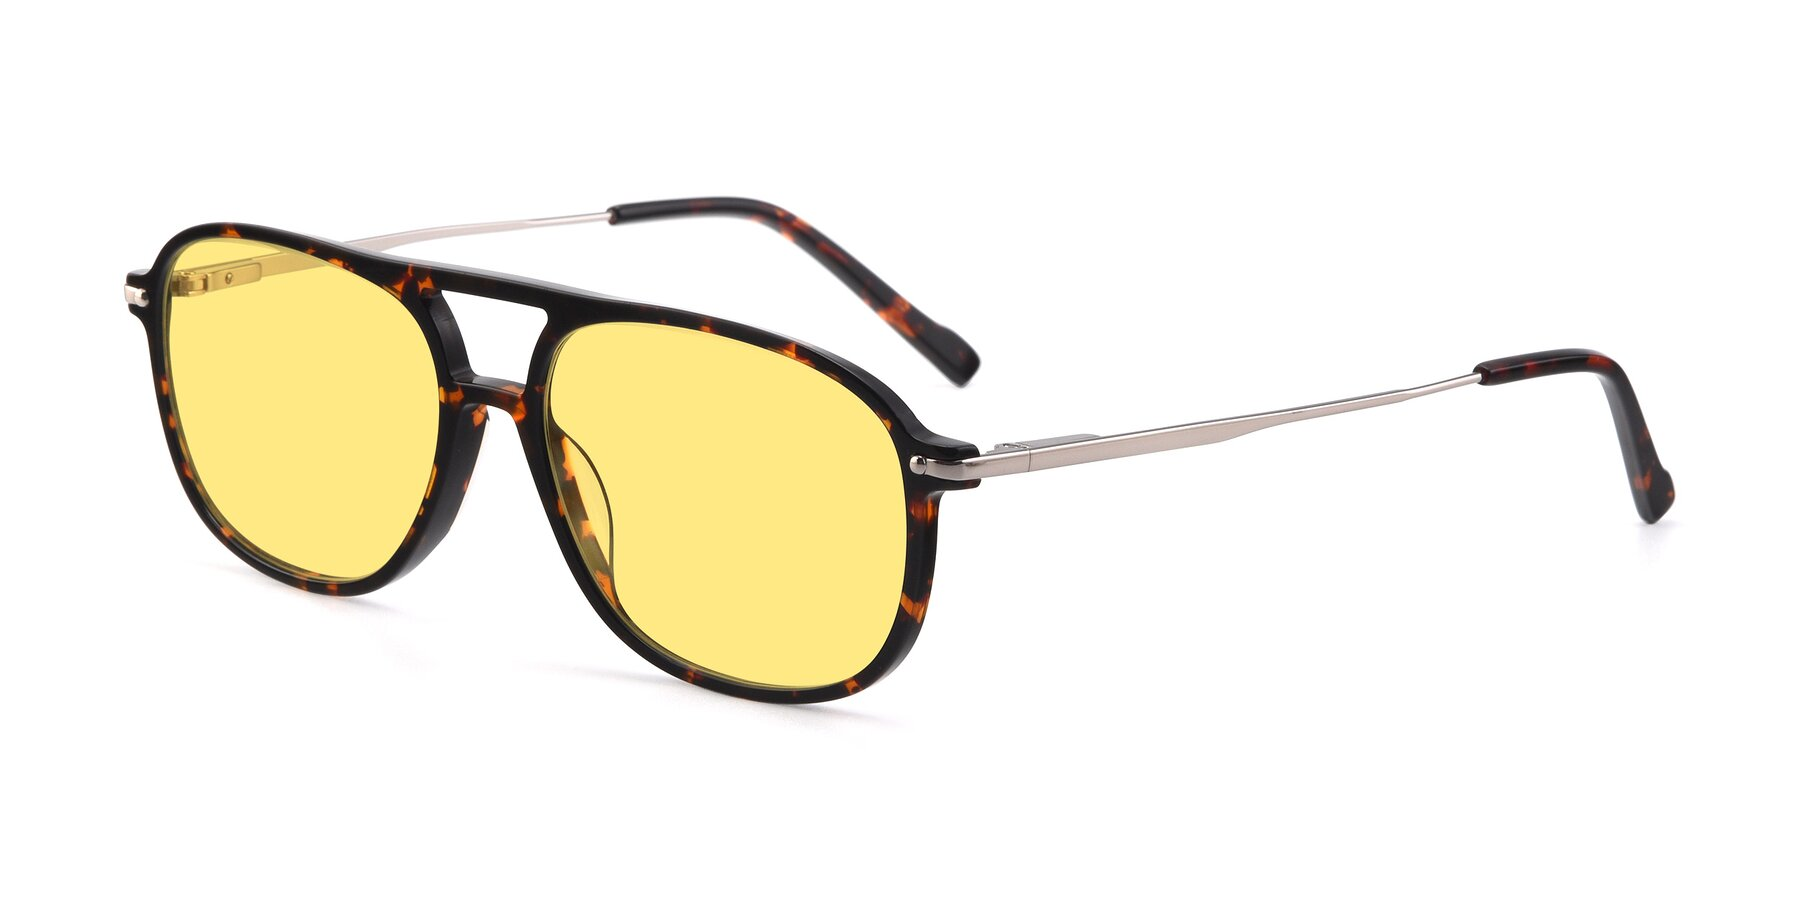 Angle of 17580 in Tortoise with Medium Yellow Tinted Lenses